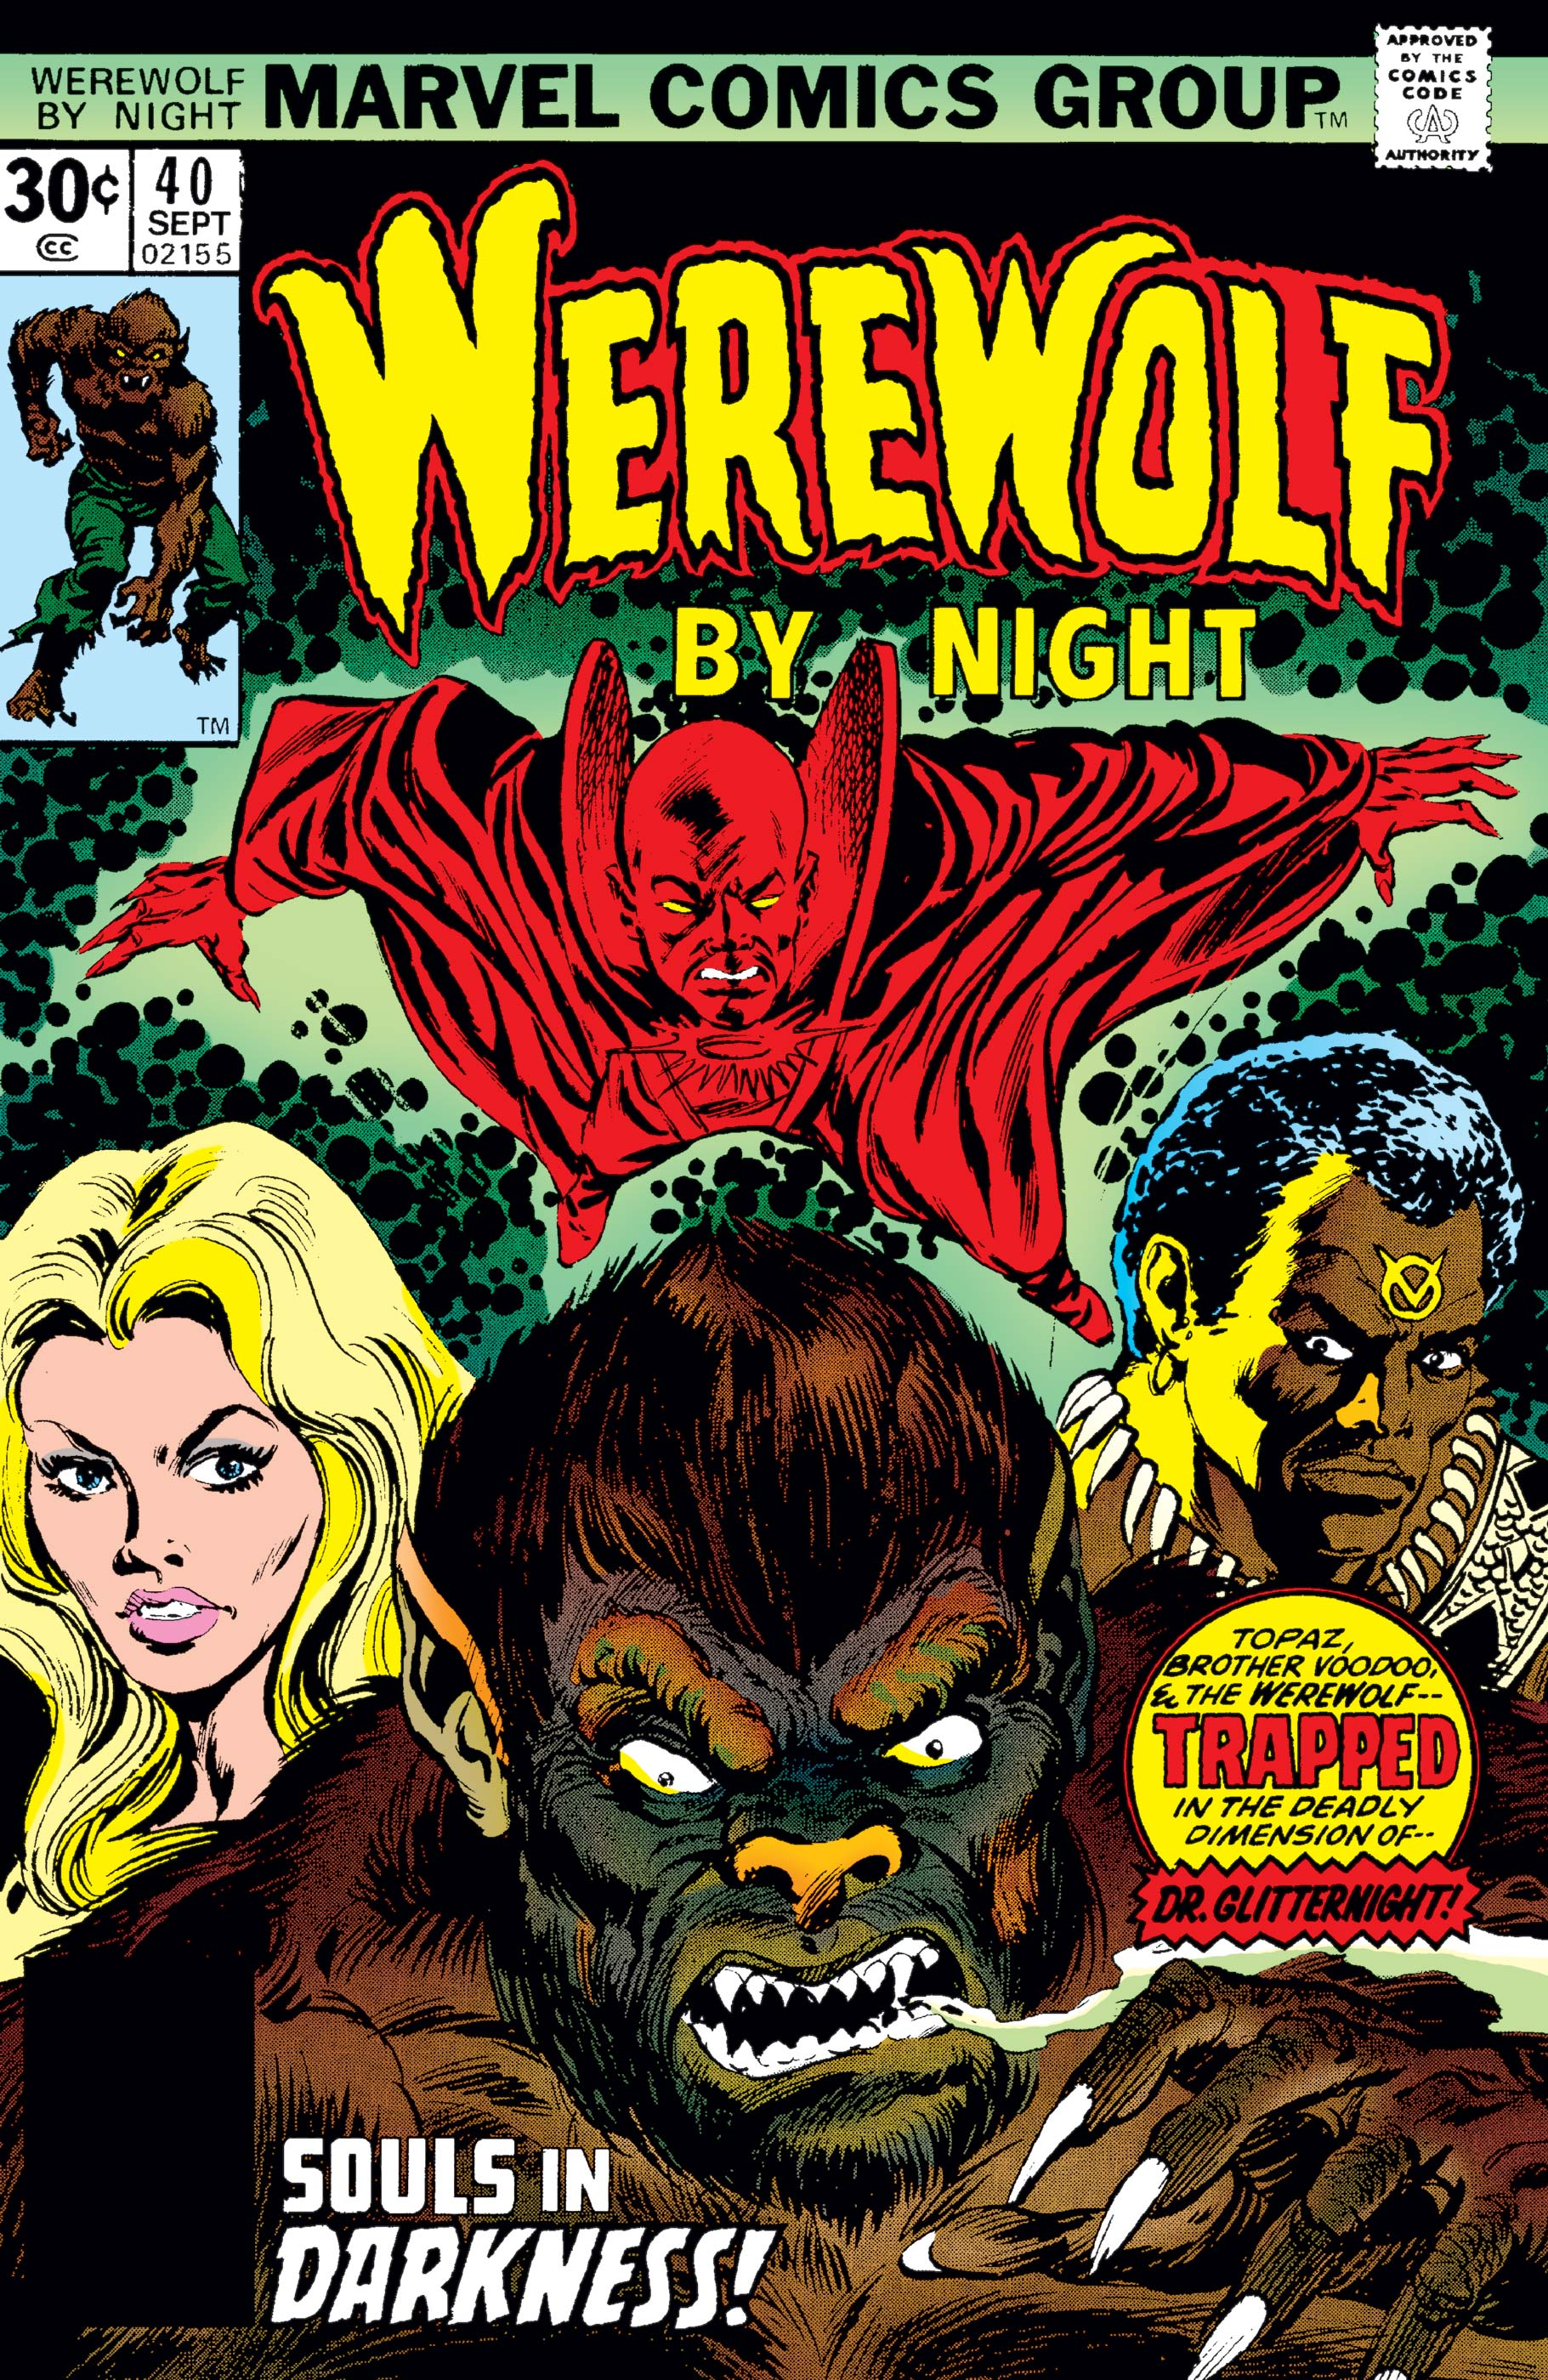 Werewolf By Night (1972) #40